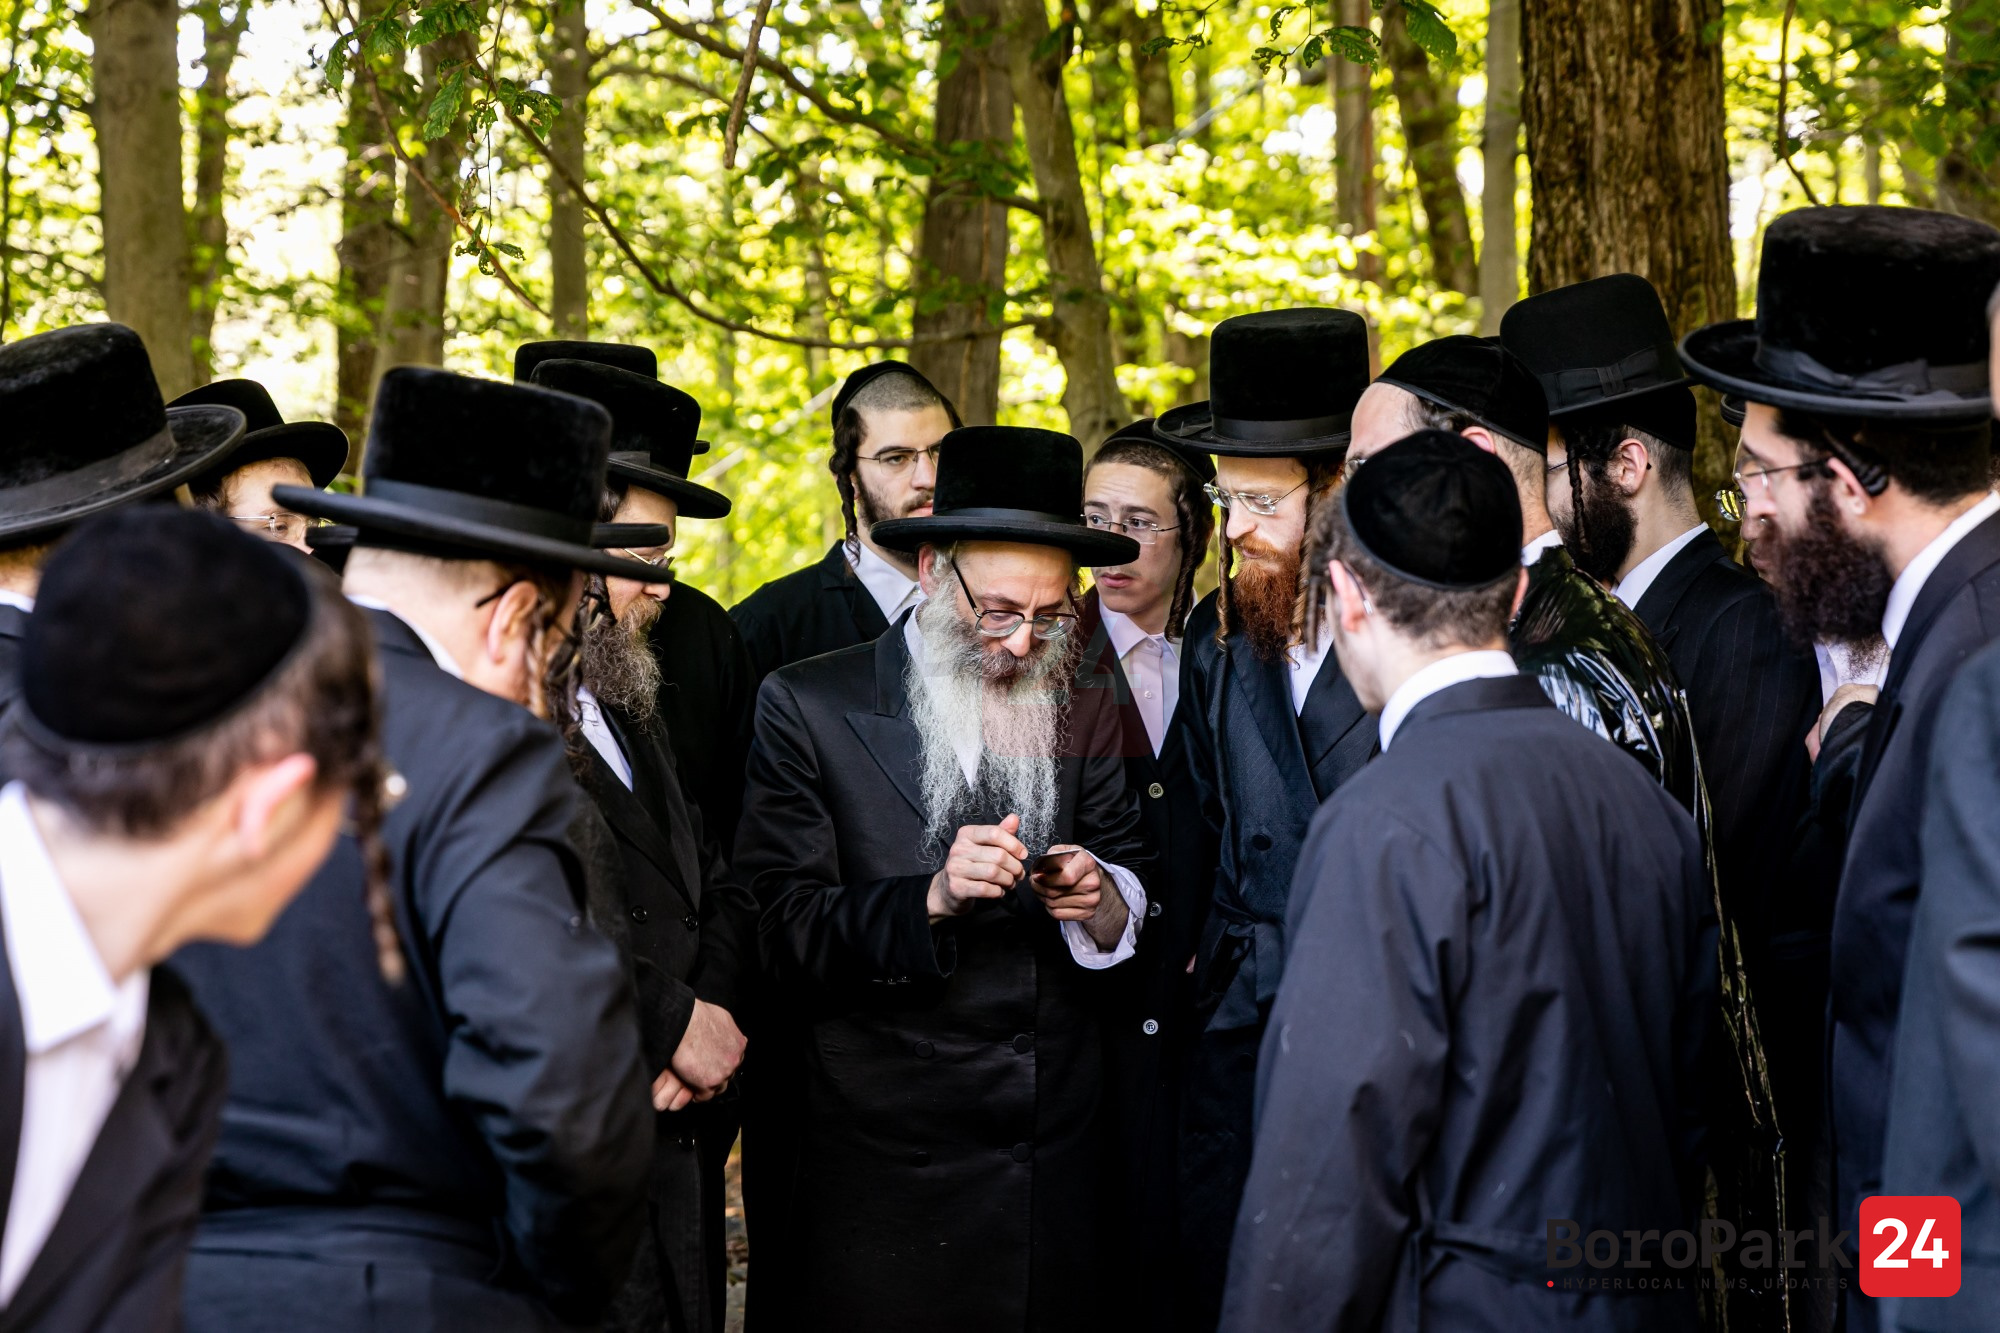 A group of bochurim who studied Hilchos Shchita in the Chernobyler yeshiva of Eretz Yisroel but were forced to remain in the US due to Covid were shown a live shechita demonstration upon the completion of the sugya.